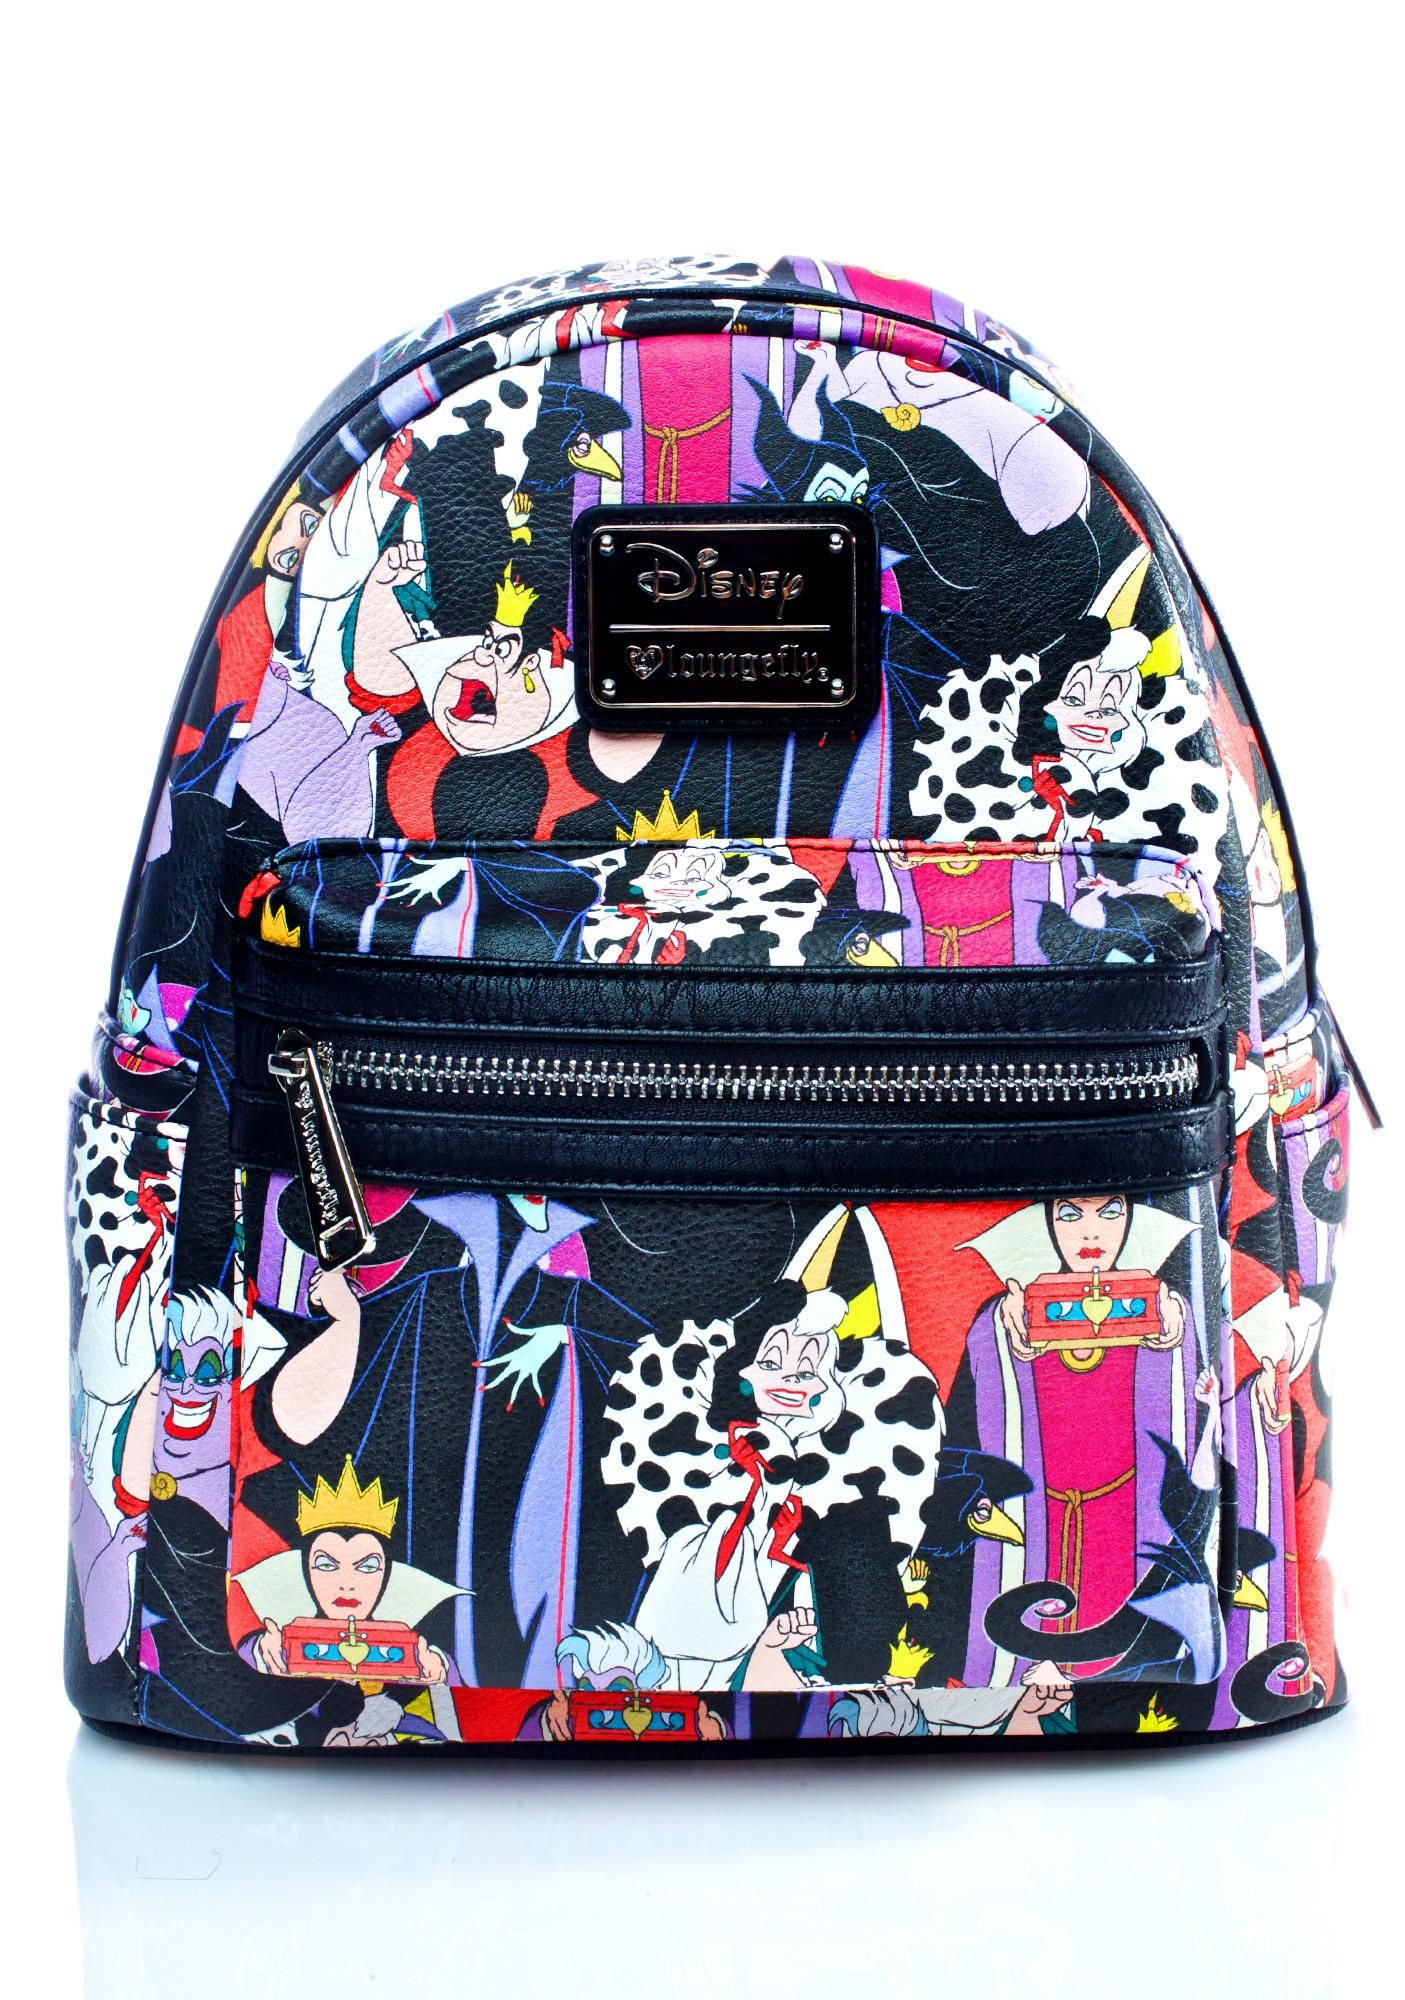 96bf7c33f23 Loungefly X Disney Villains Evil Queens Backpack